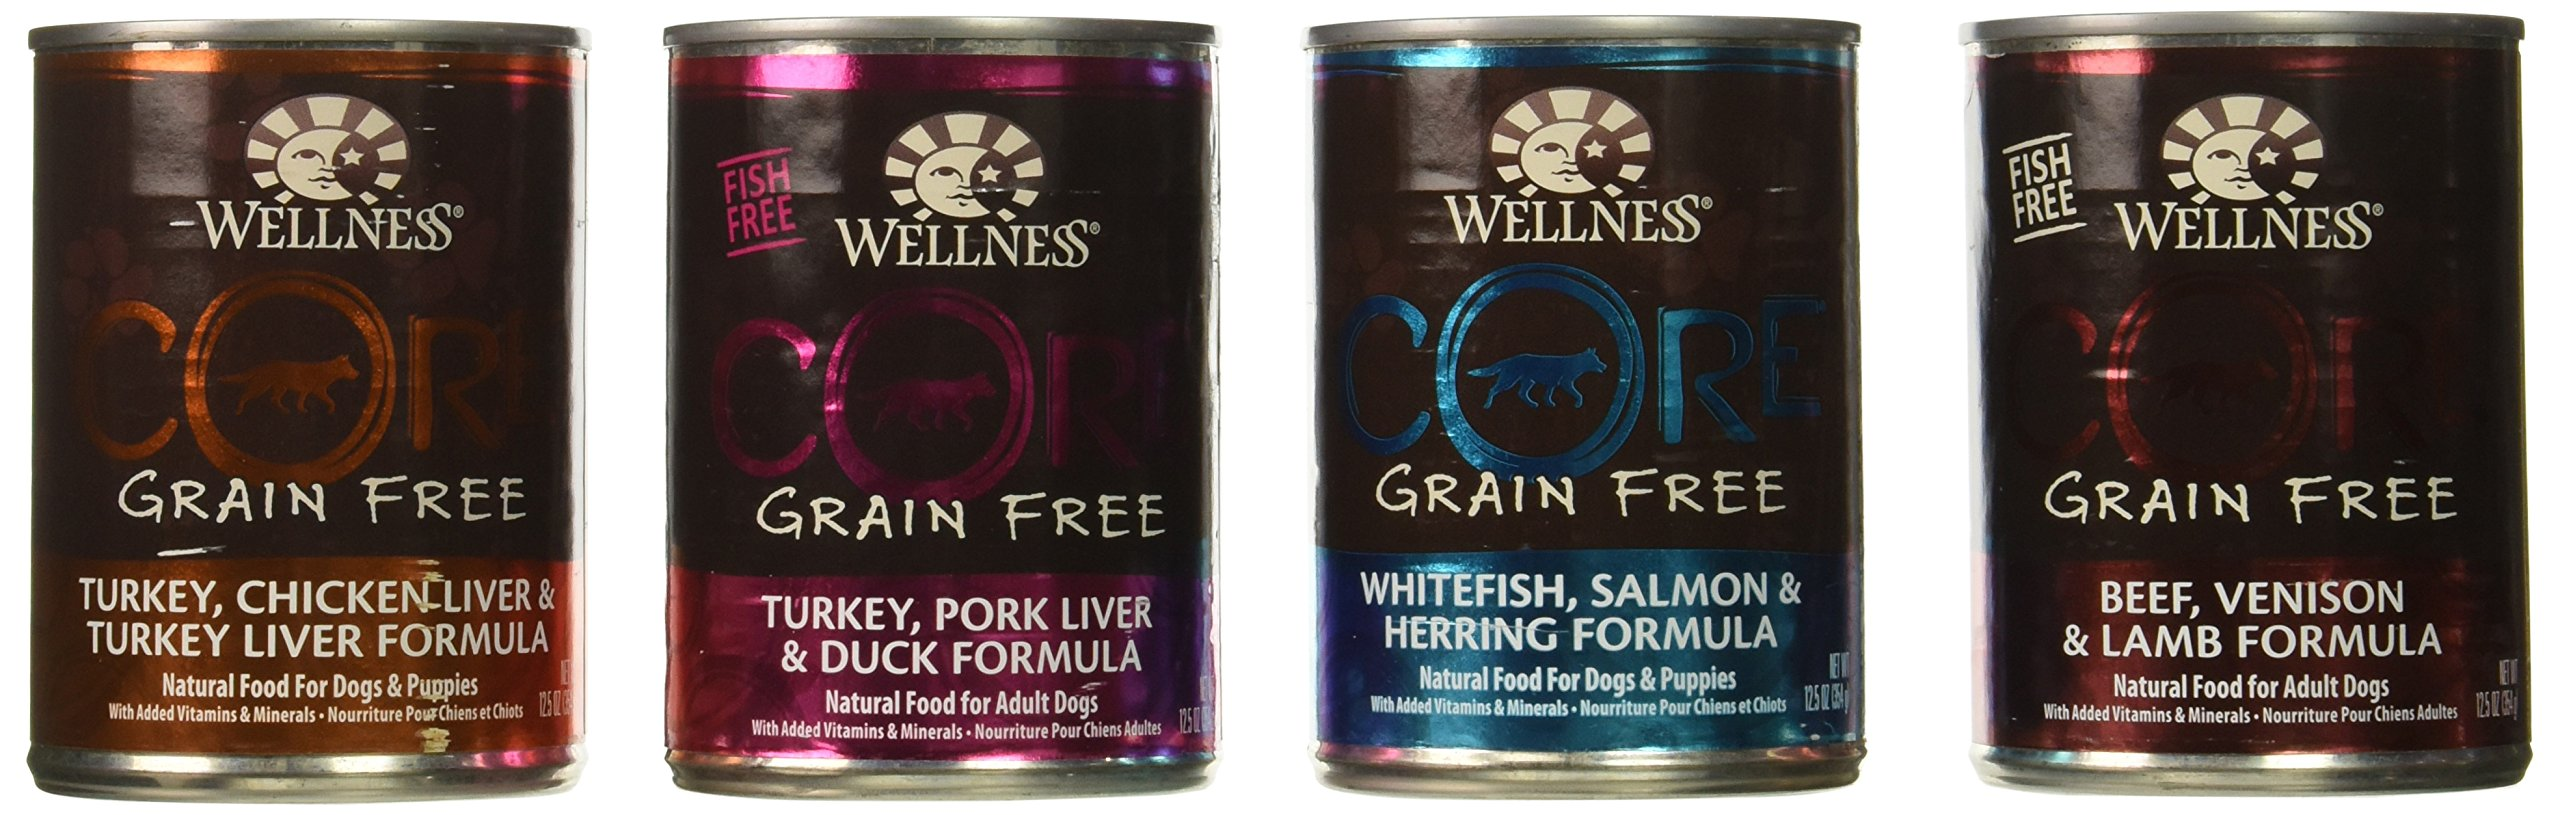 Wellness CORE Natural Grain Free Wet Canned Dog Food Variety Pack - 4 Different Flavors - 12.5 Ounces Each (12 Total Cans) by Wellness Natural Pet Food